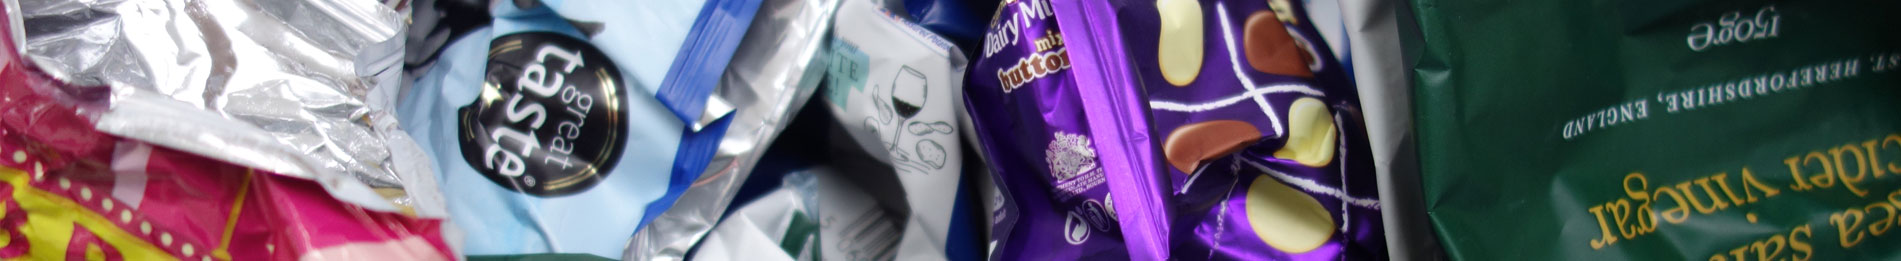 Crisp and Chocolate Packets for Recycling